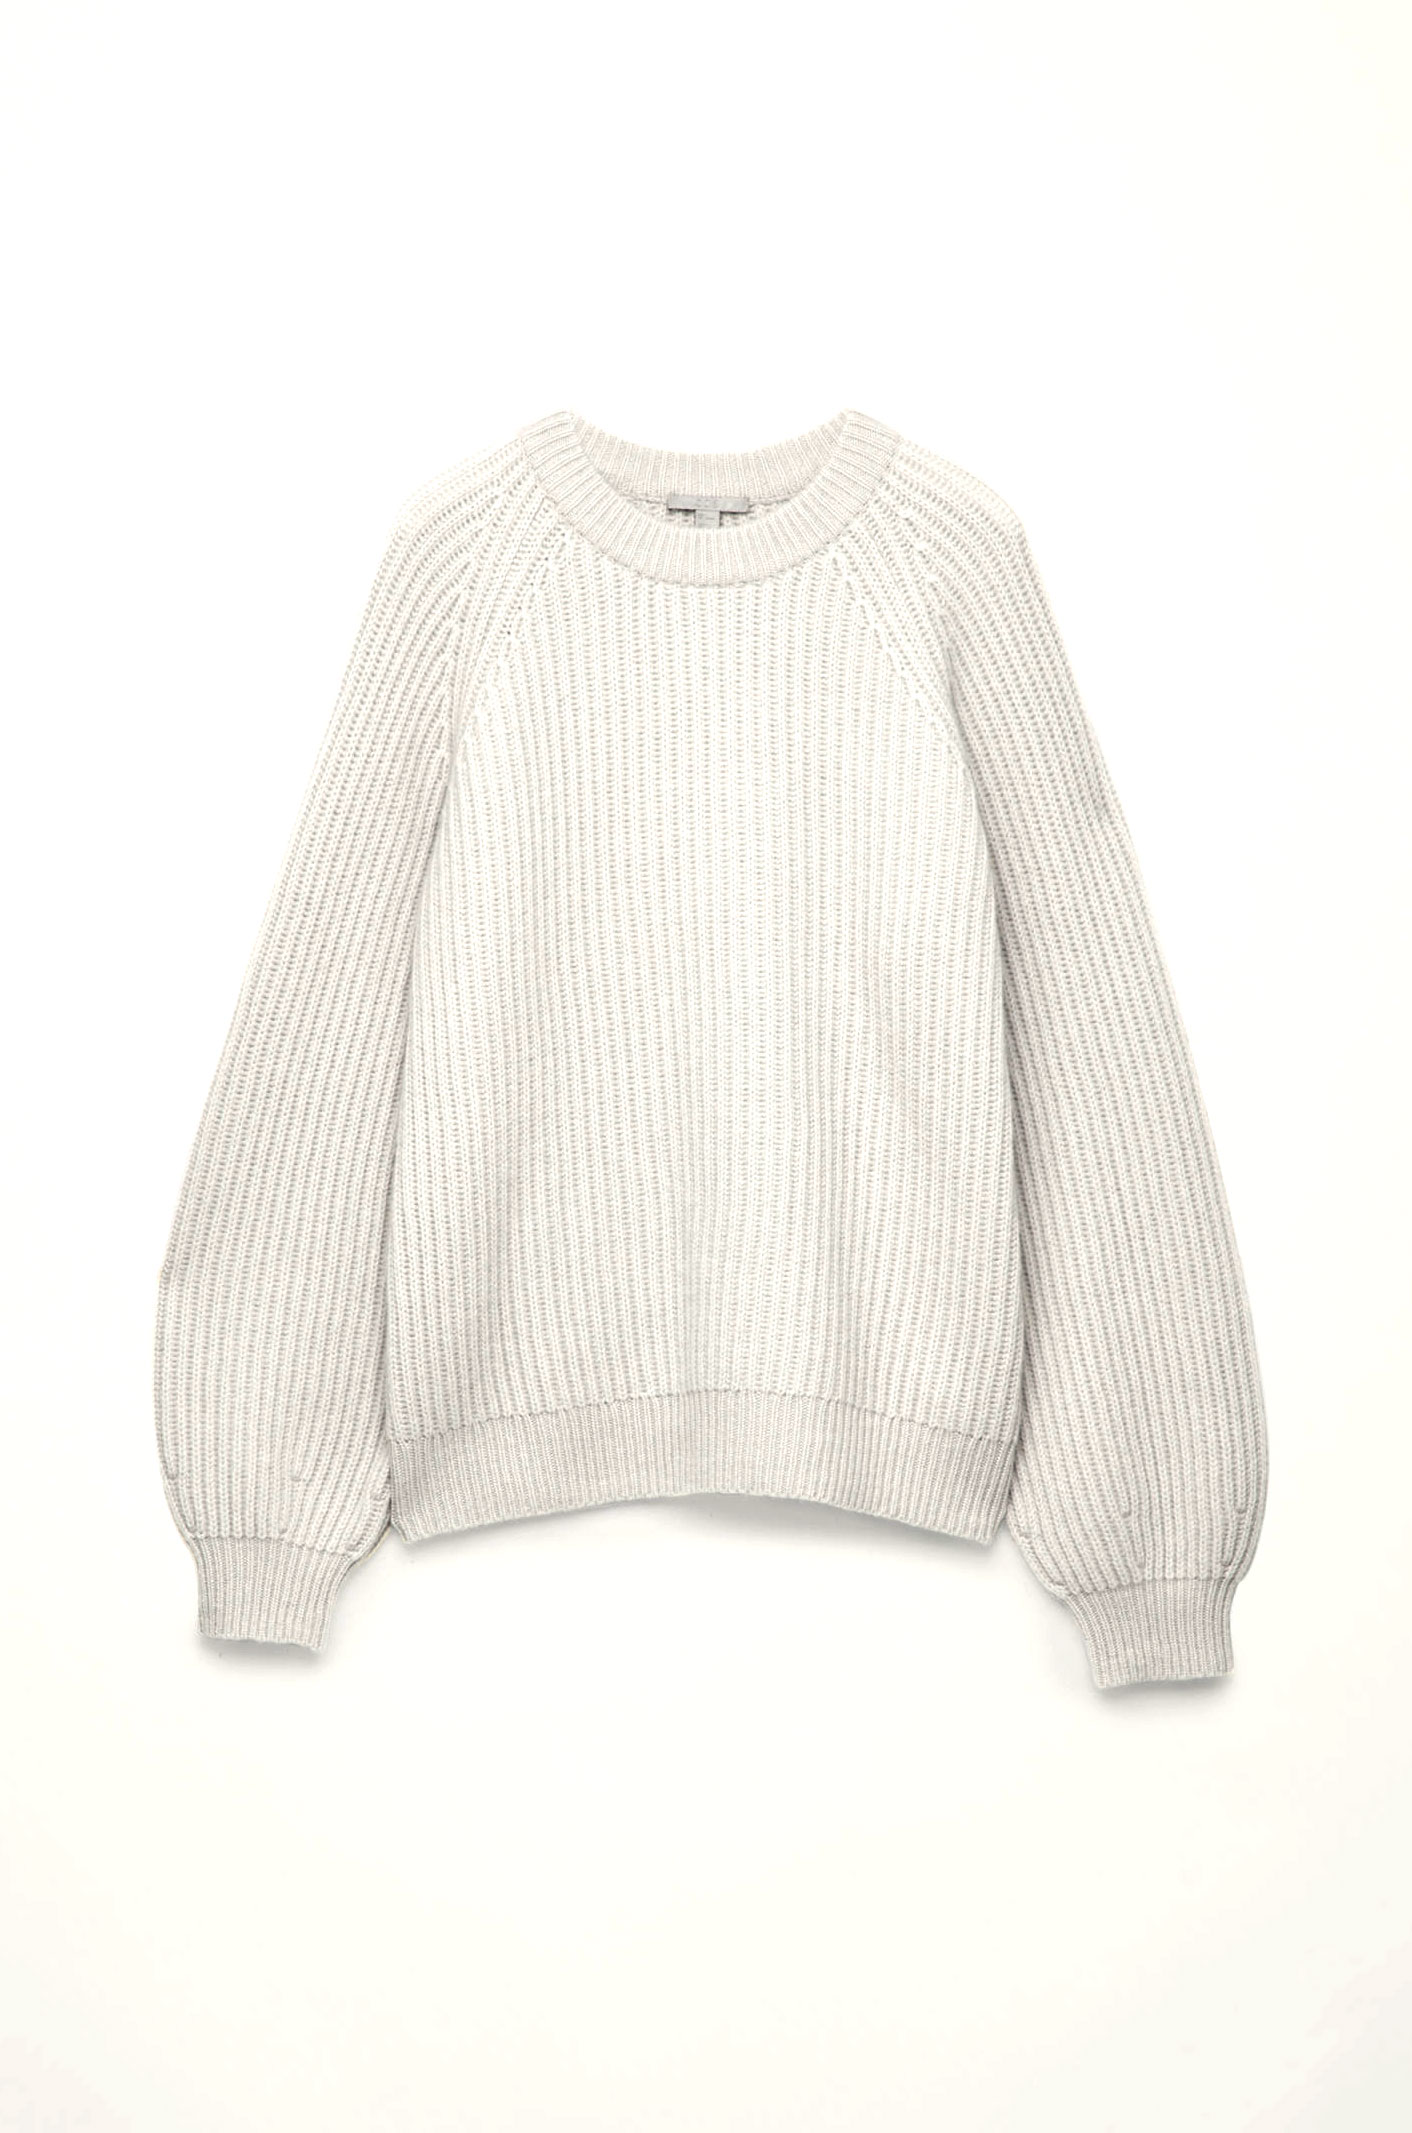 Cos Cashmere Sweater     $250